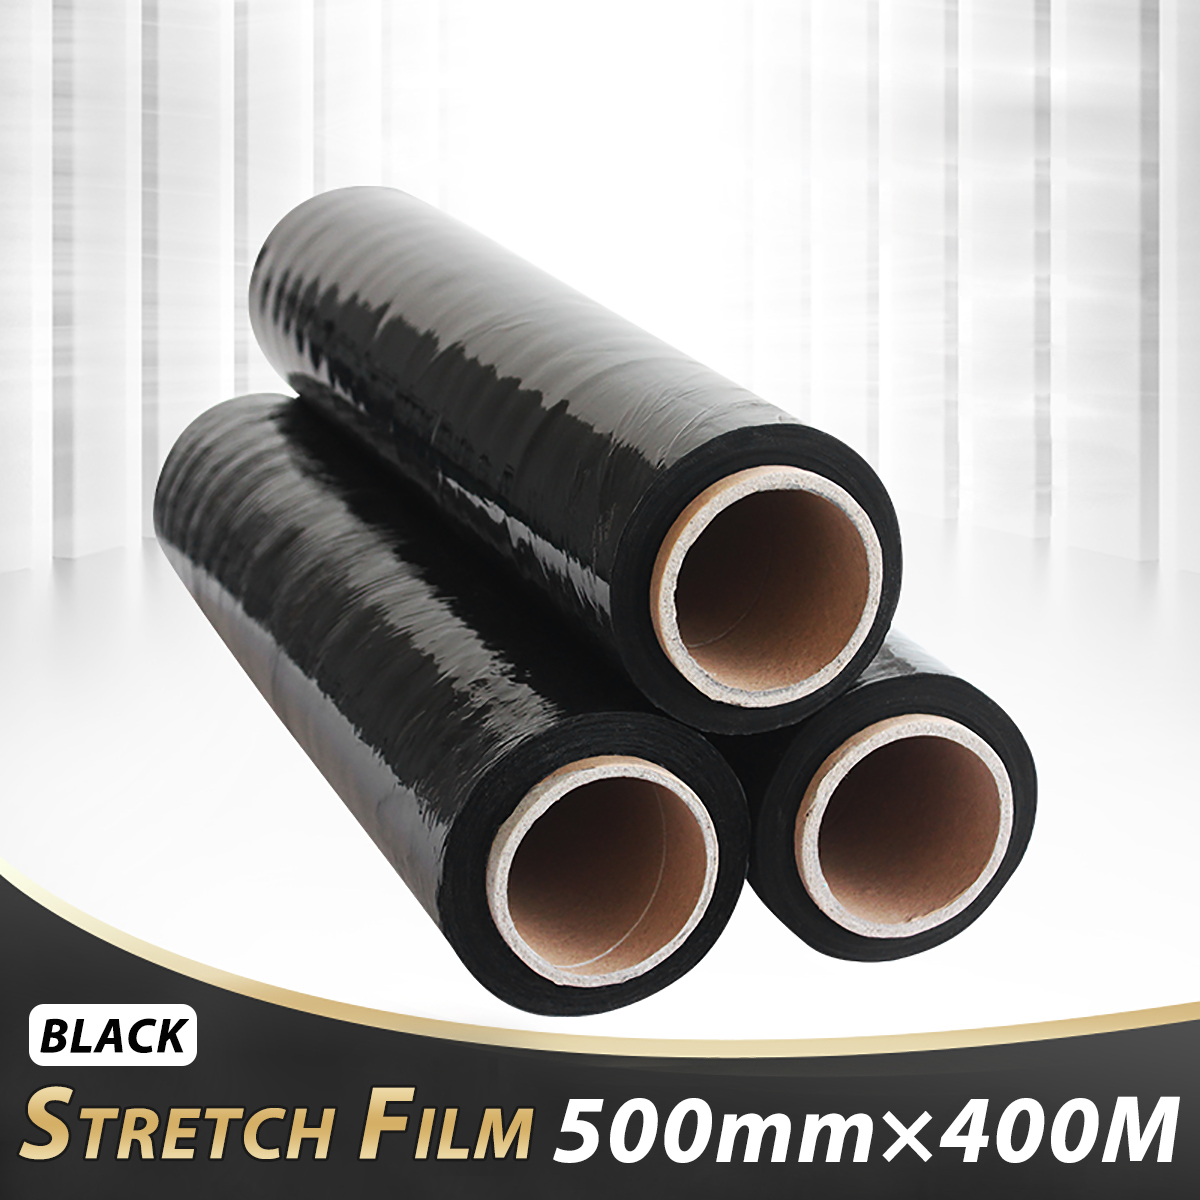 1Pcs 500mmx400M Black Stretch Film PE For Carton Pallet Shrink Wrap Packing1Pcs 500mmx400M Black Stretch Film PE For Carton Pallet Shrink Wrap Packing